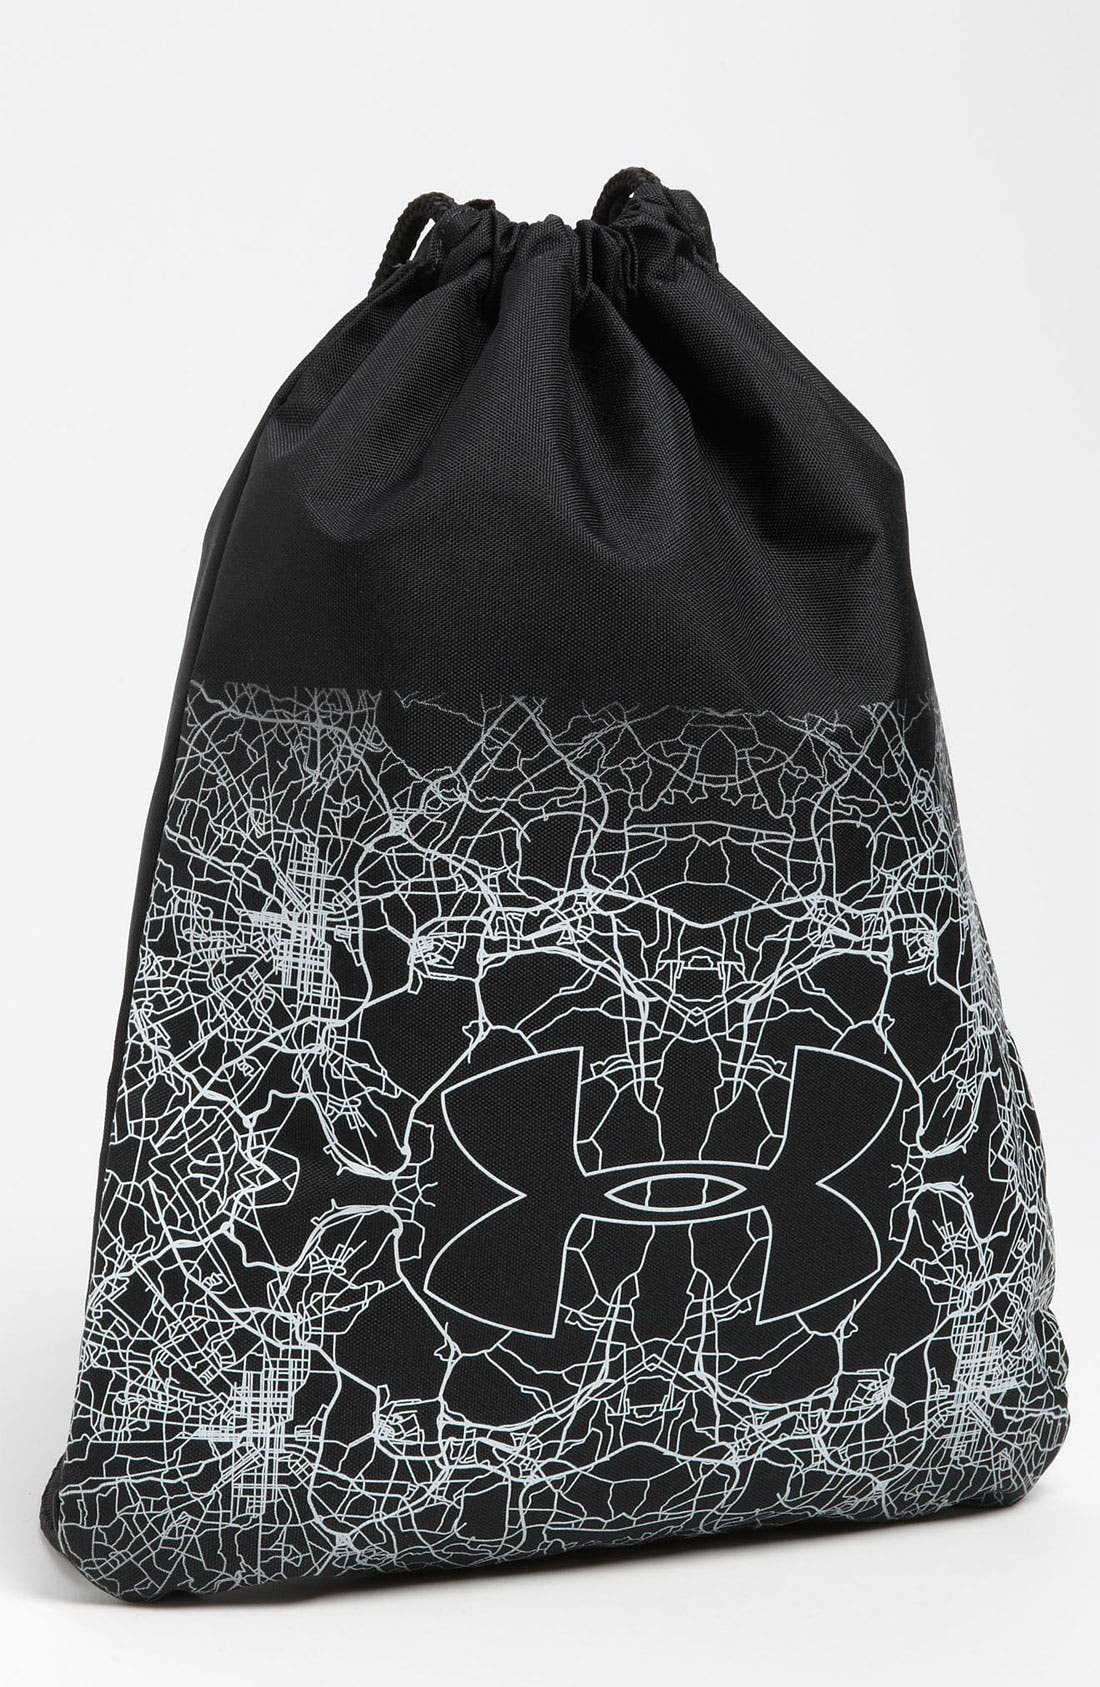 Alternate Image 1 Selected - Under Armour 'Tyro Courage' Sackpack (Kids)